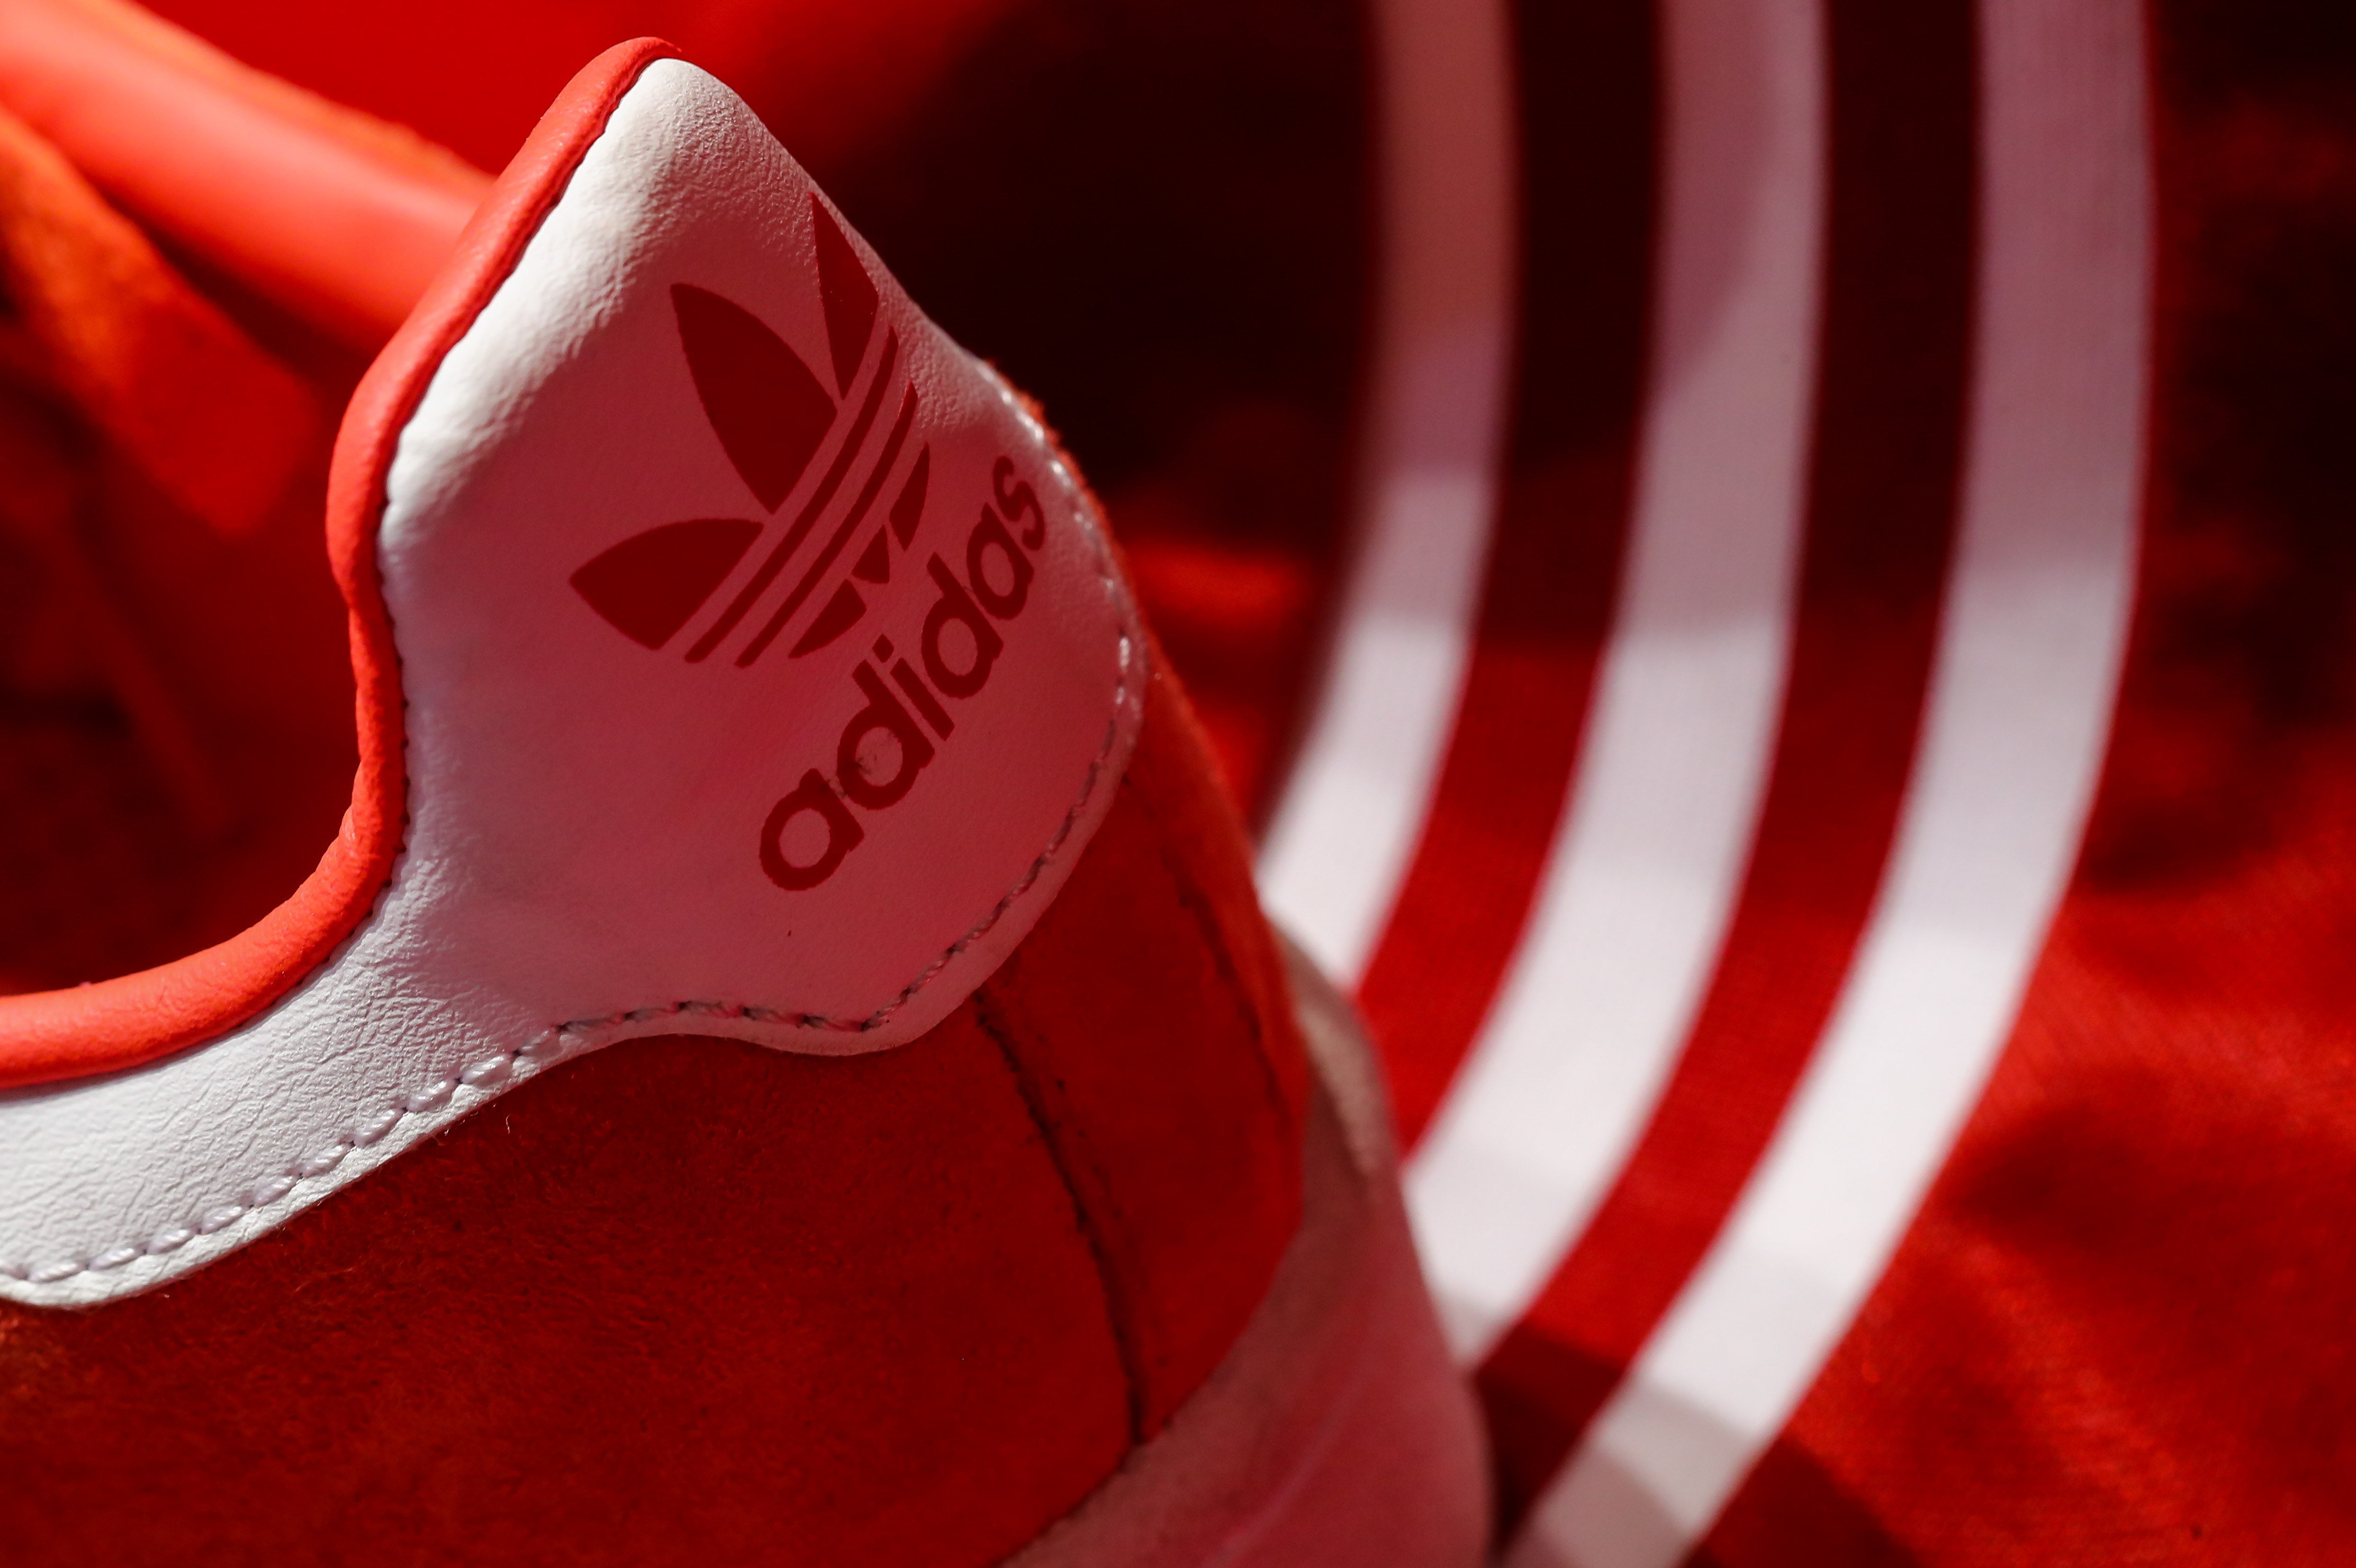 Adidas Will Phase Out Virgin Polyester From Its Sportswear